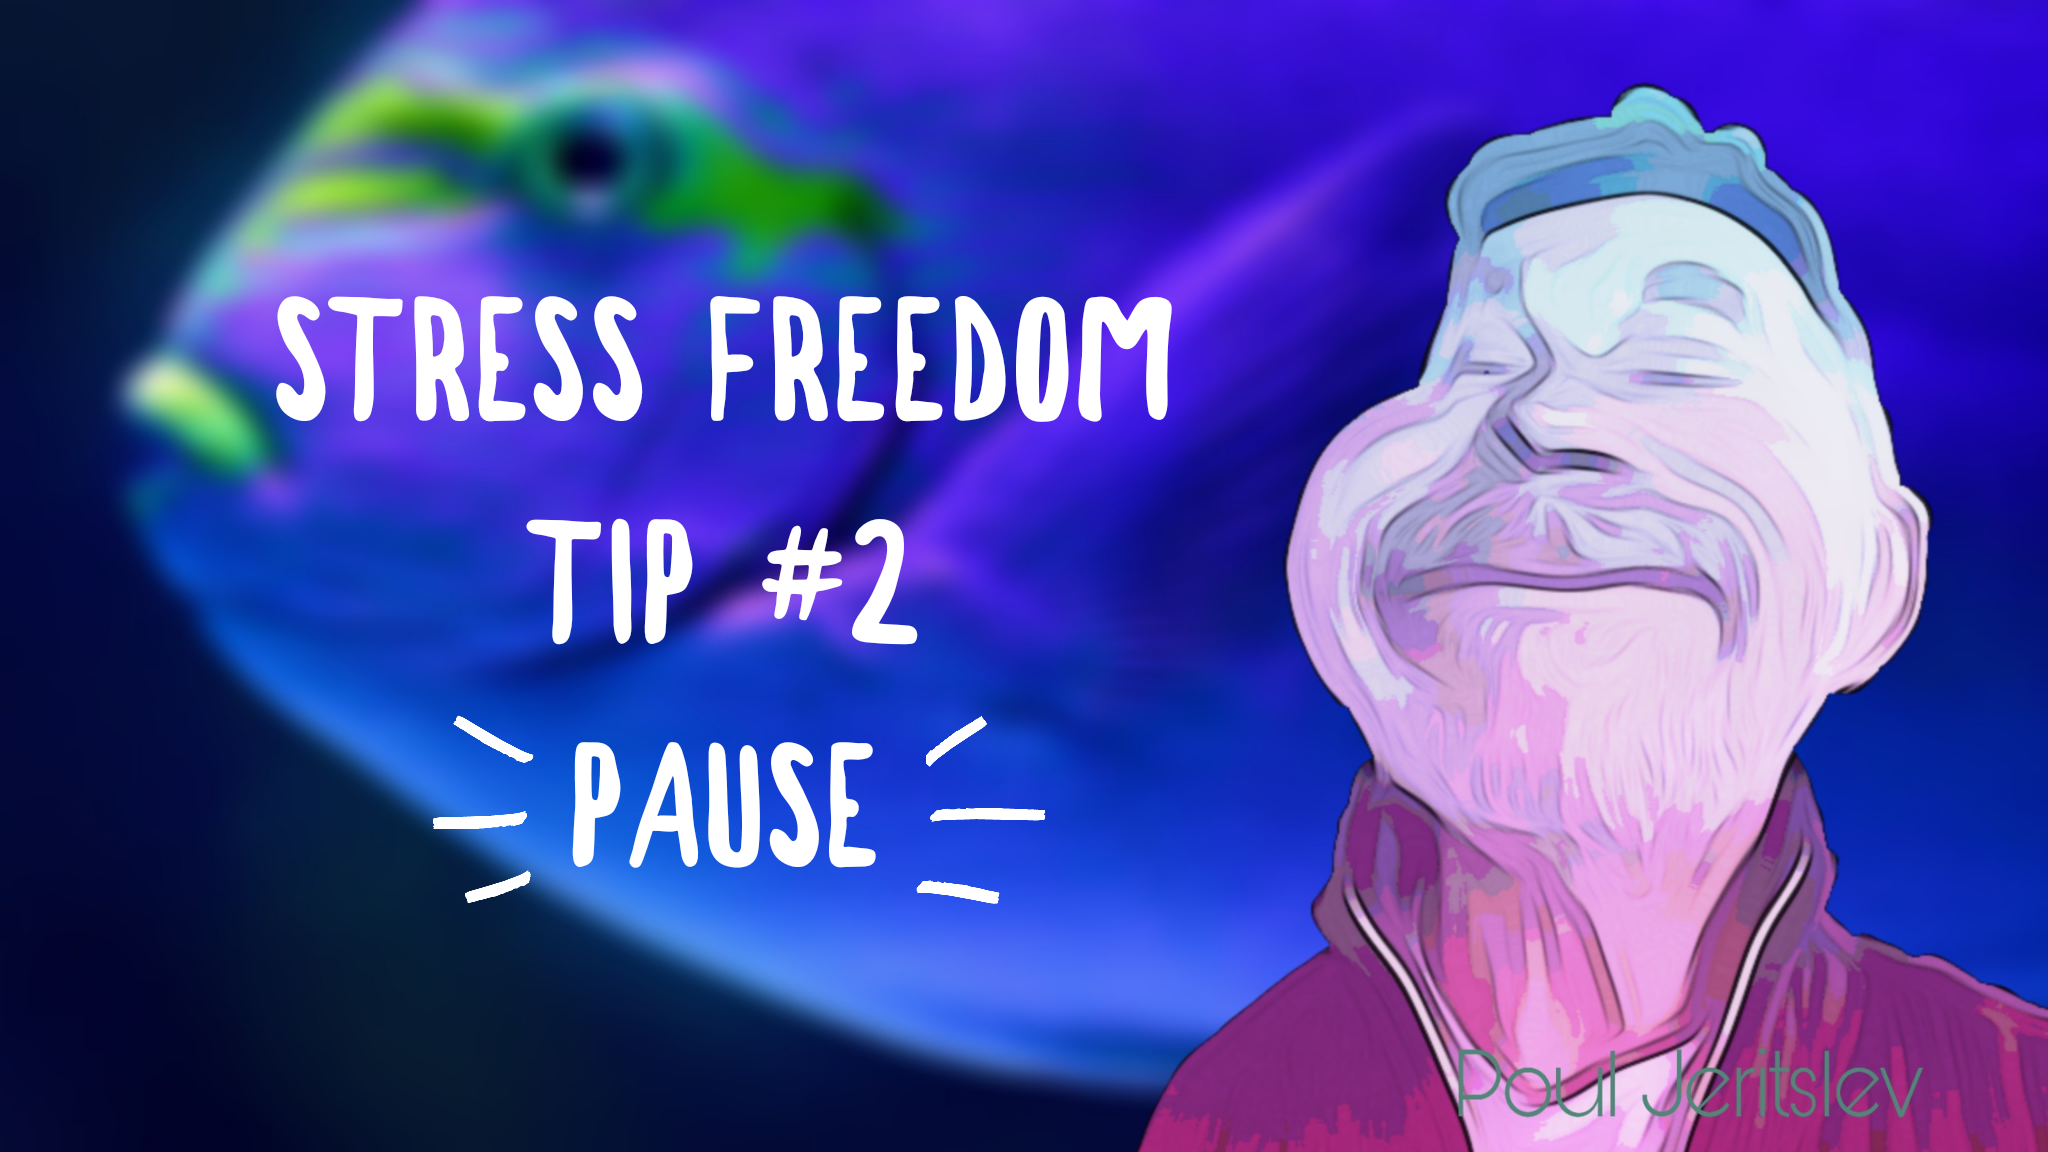 Stress Freedom TIP #2